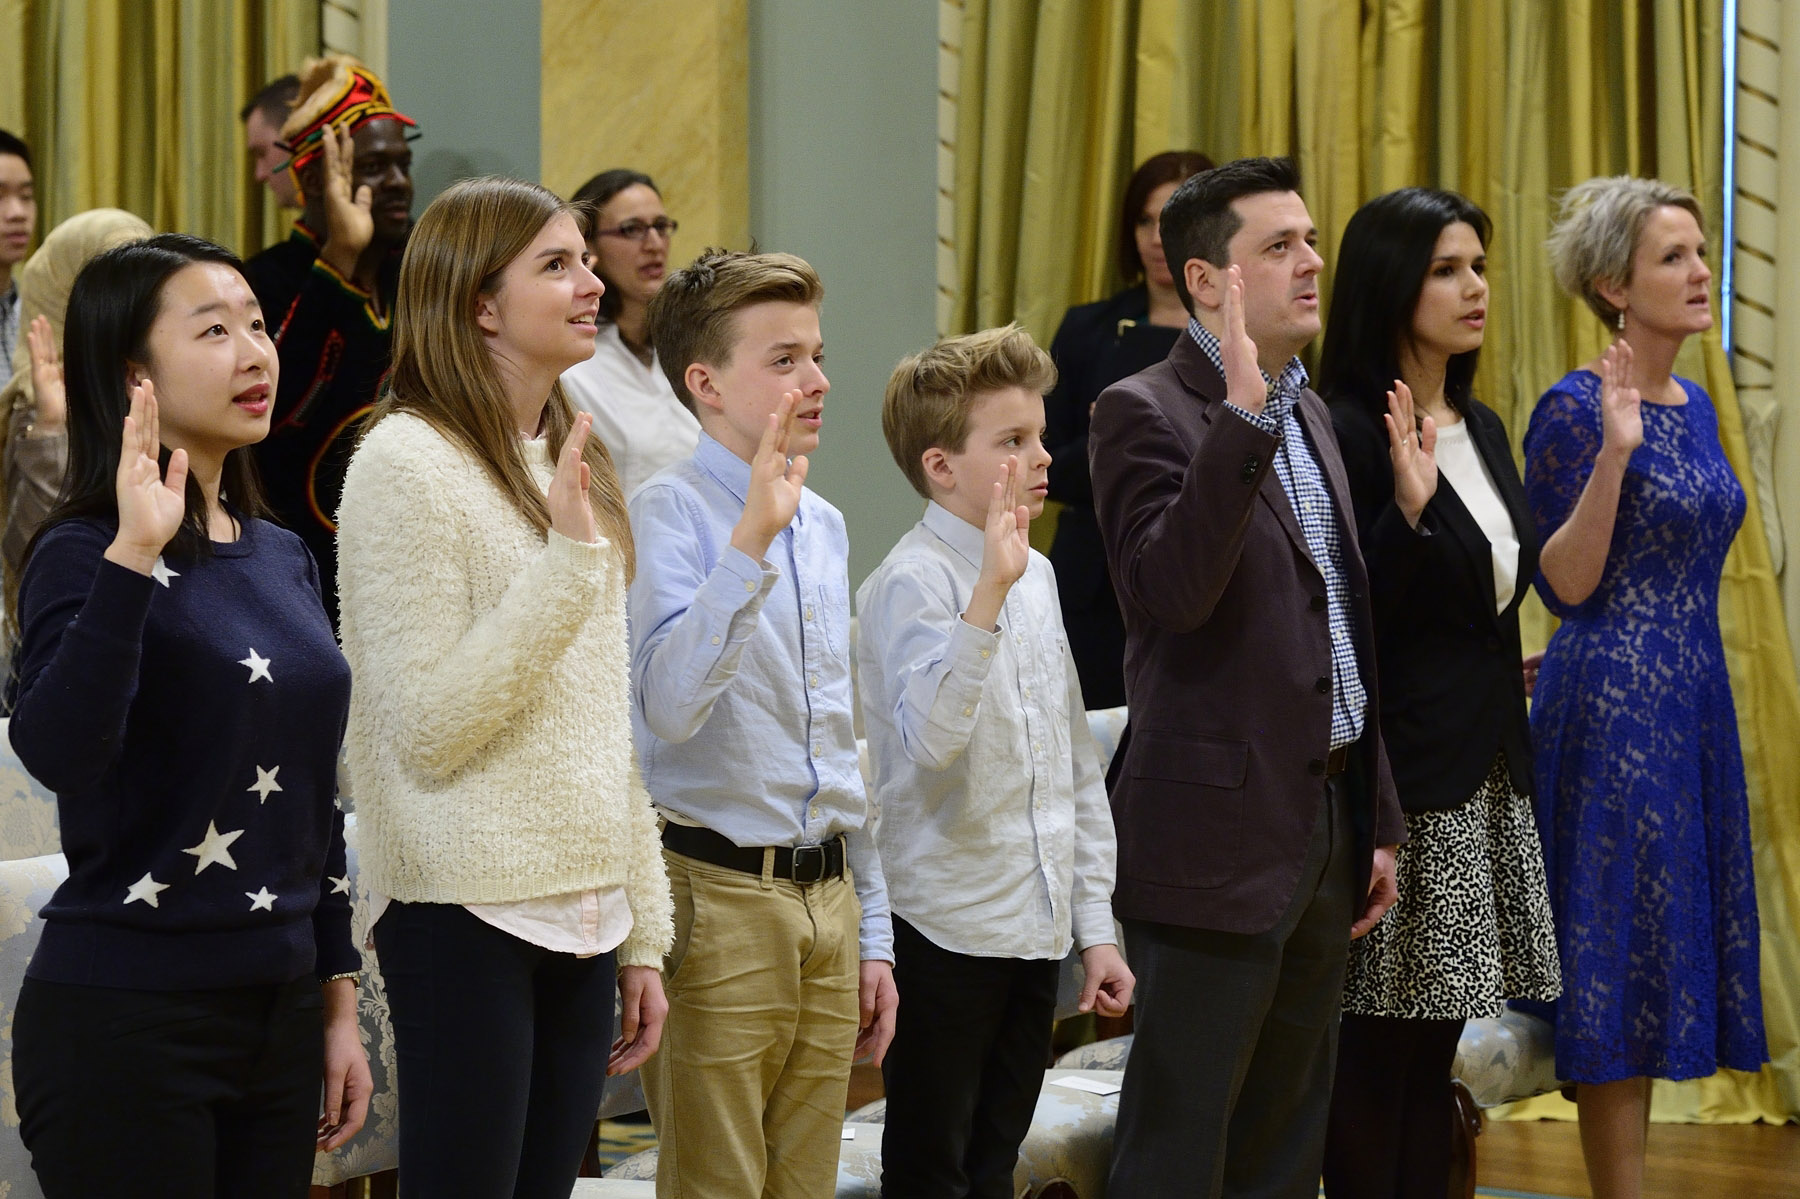 New Canadians repeated the Oath of Citizenship after His Excellency.